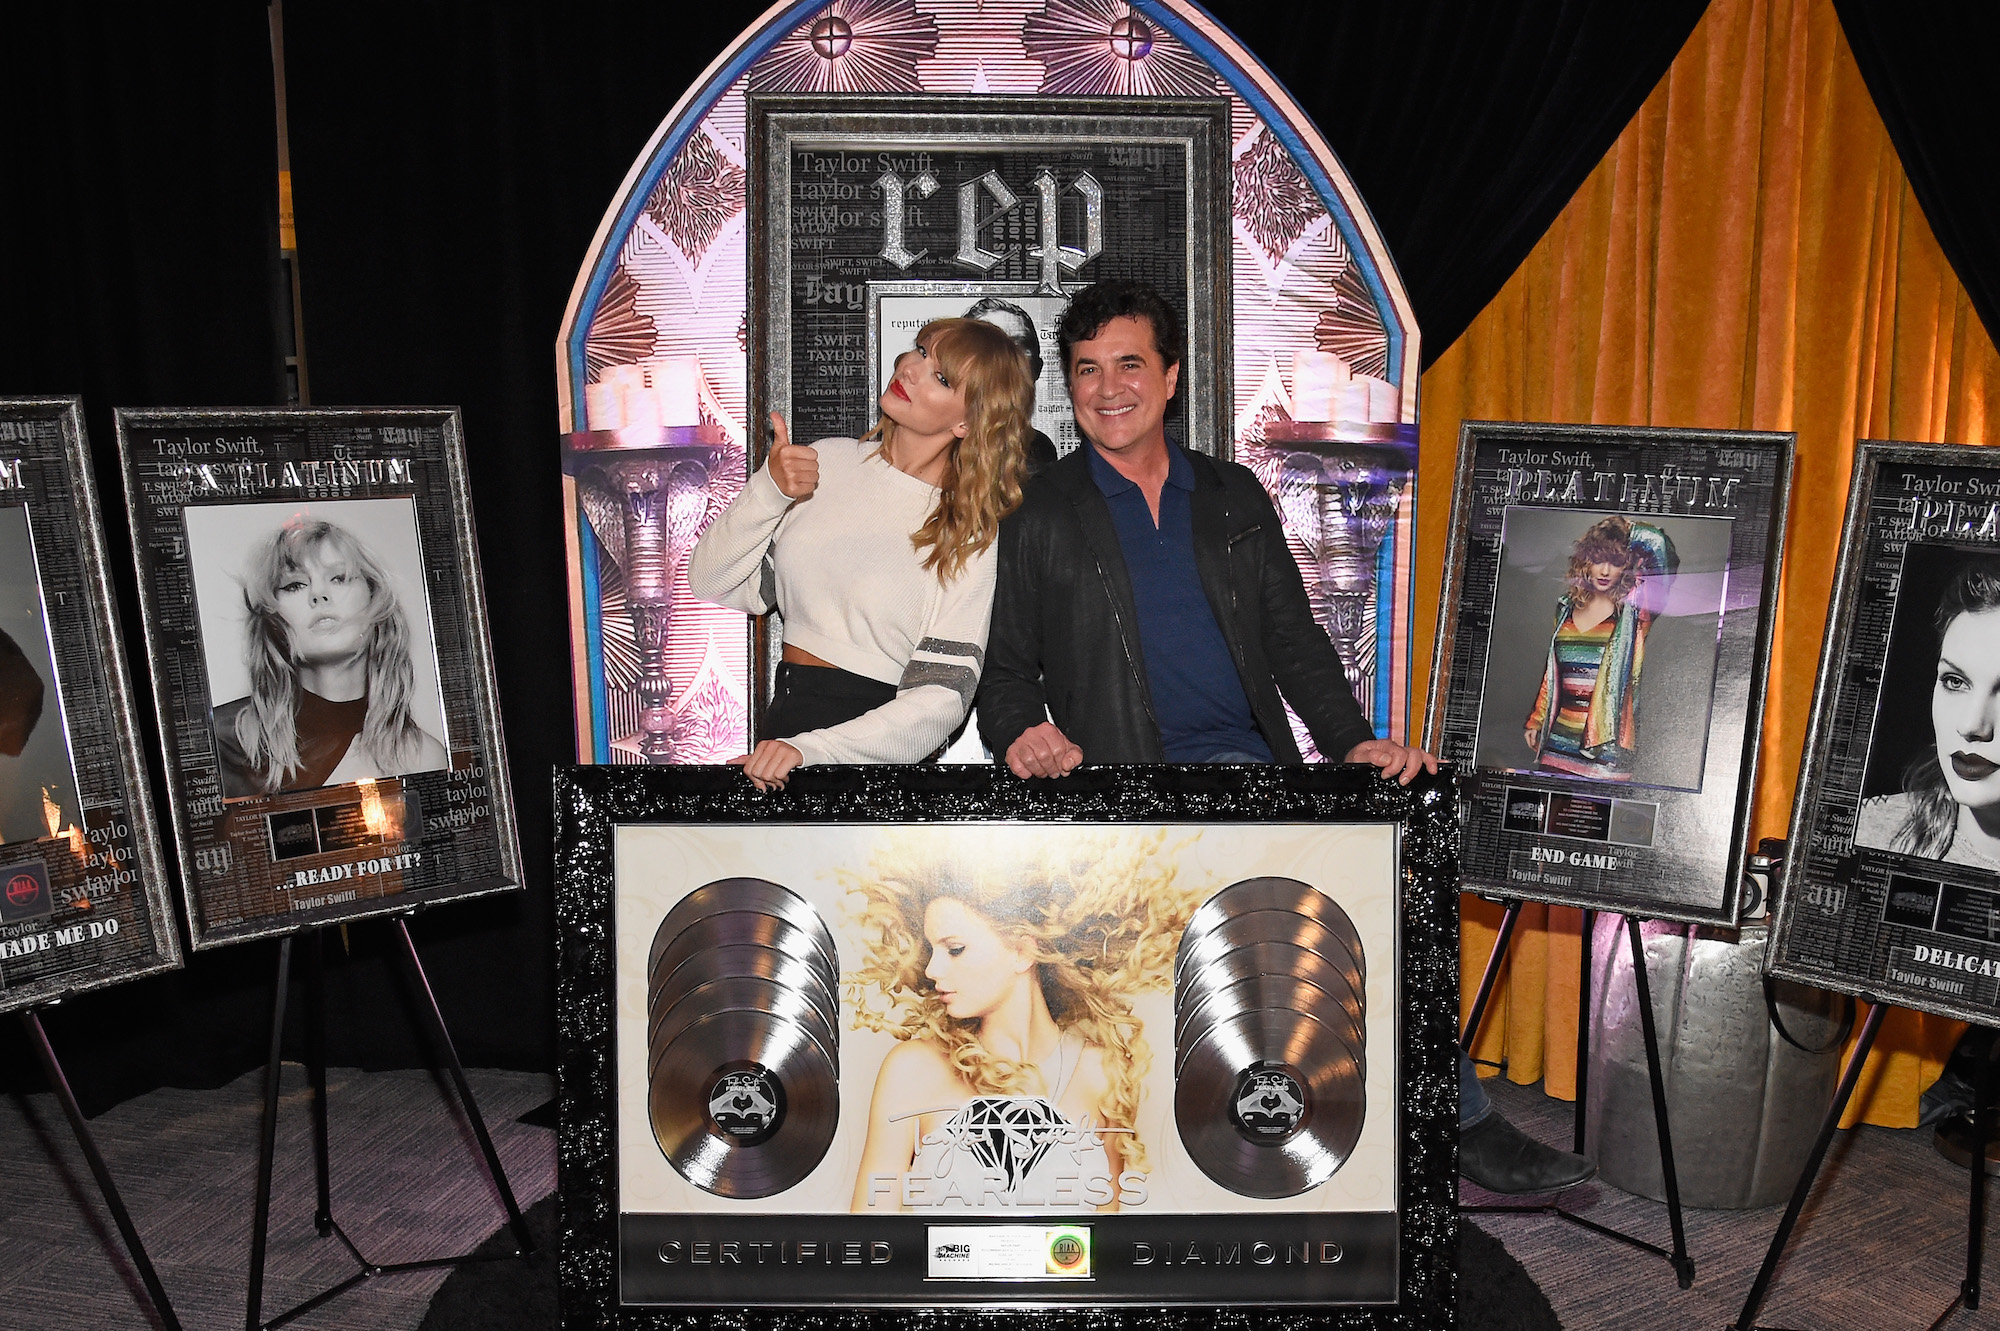 Taylor Swift and CEO of Big Machine Records Scott Borchetta plaque presentation at the Taylor Swift reputation Stadium Tour on July 21, 2018